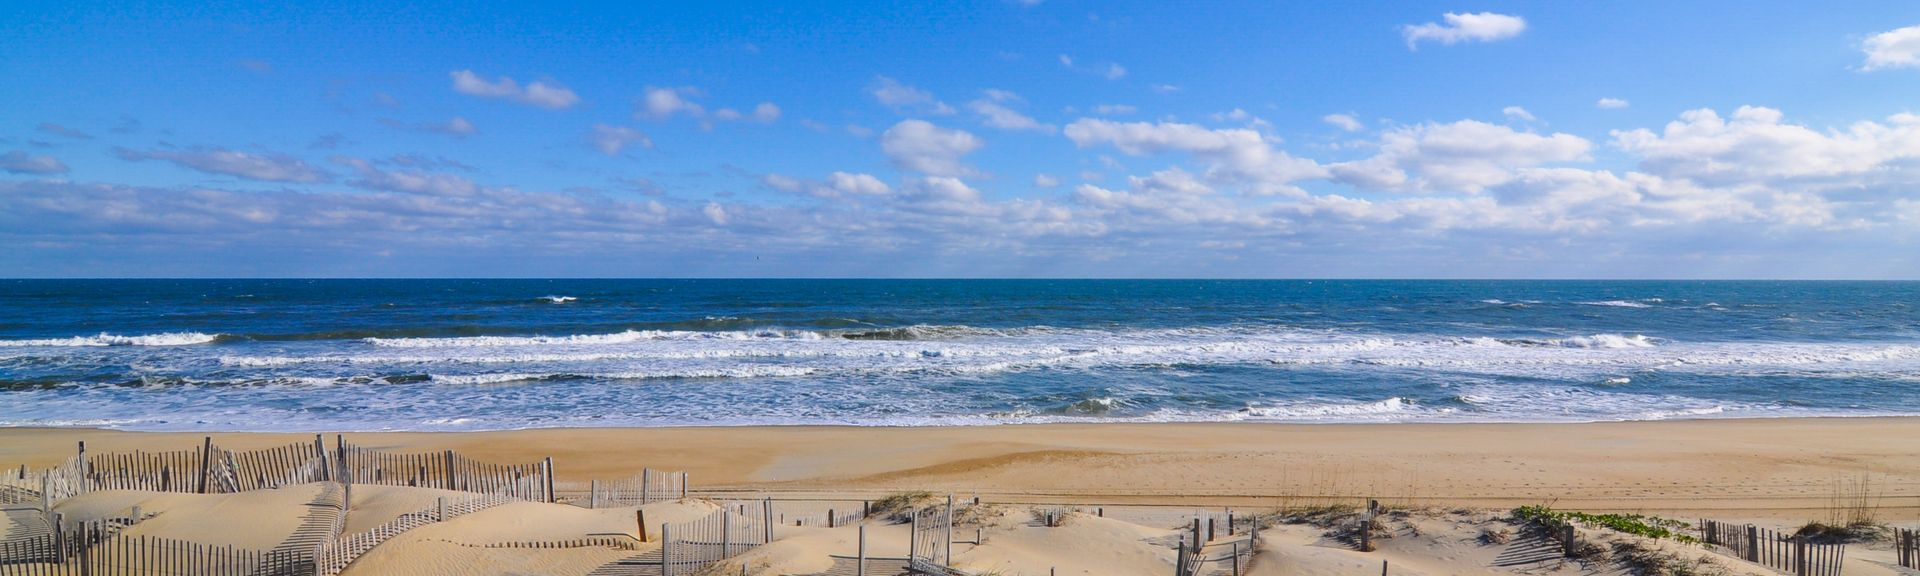 South Nags Head, Nags Head, North Carolina, USA